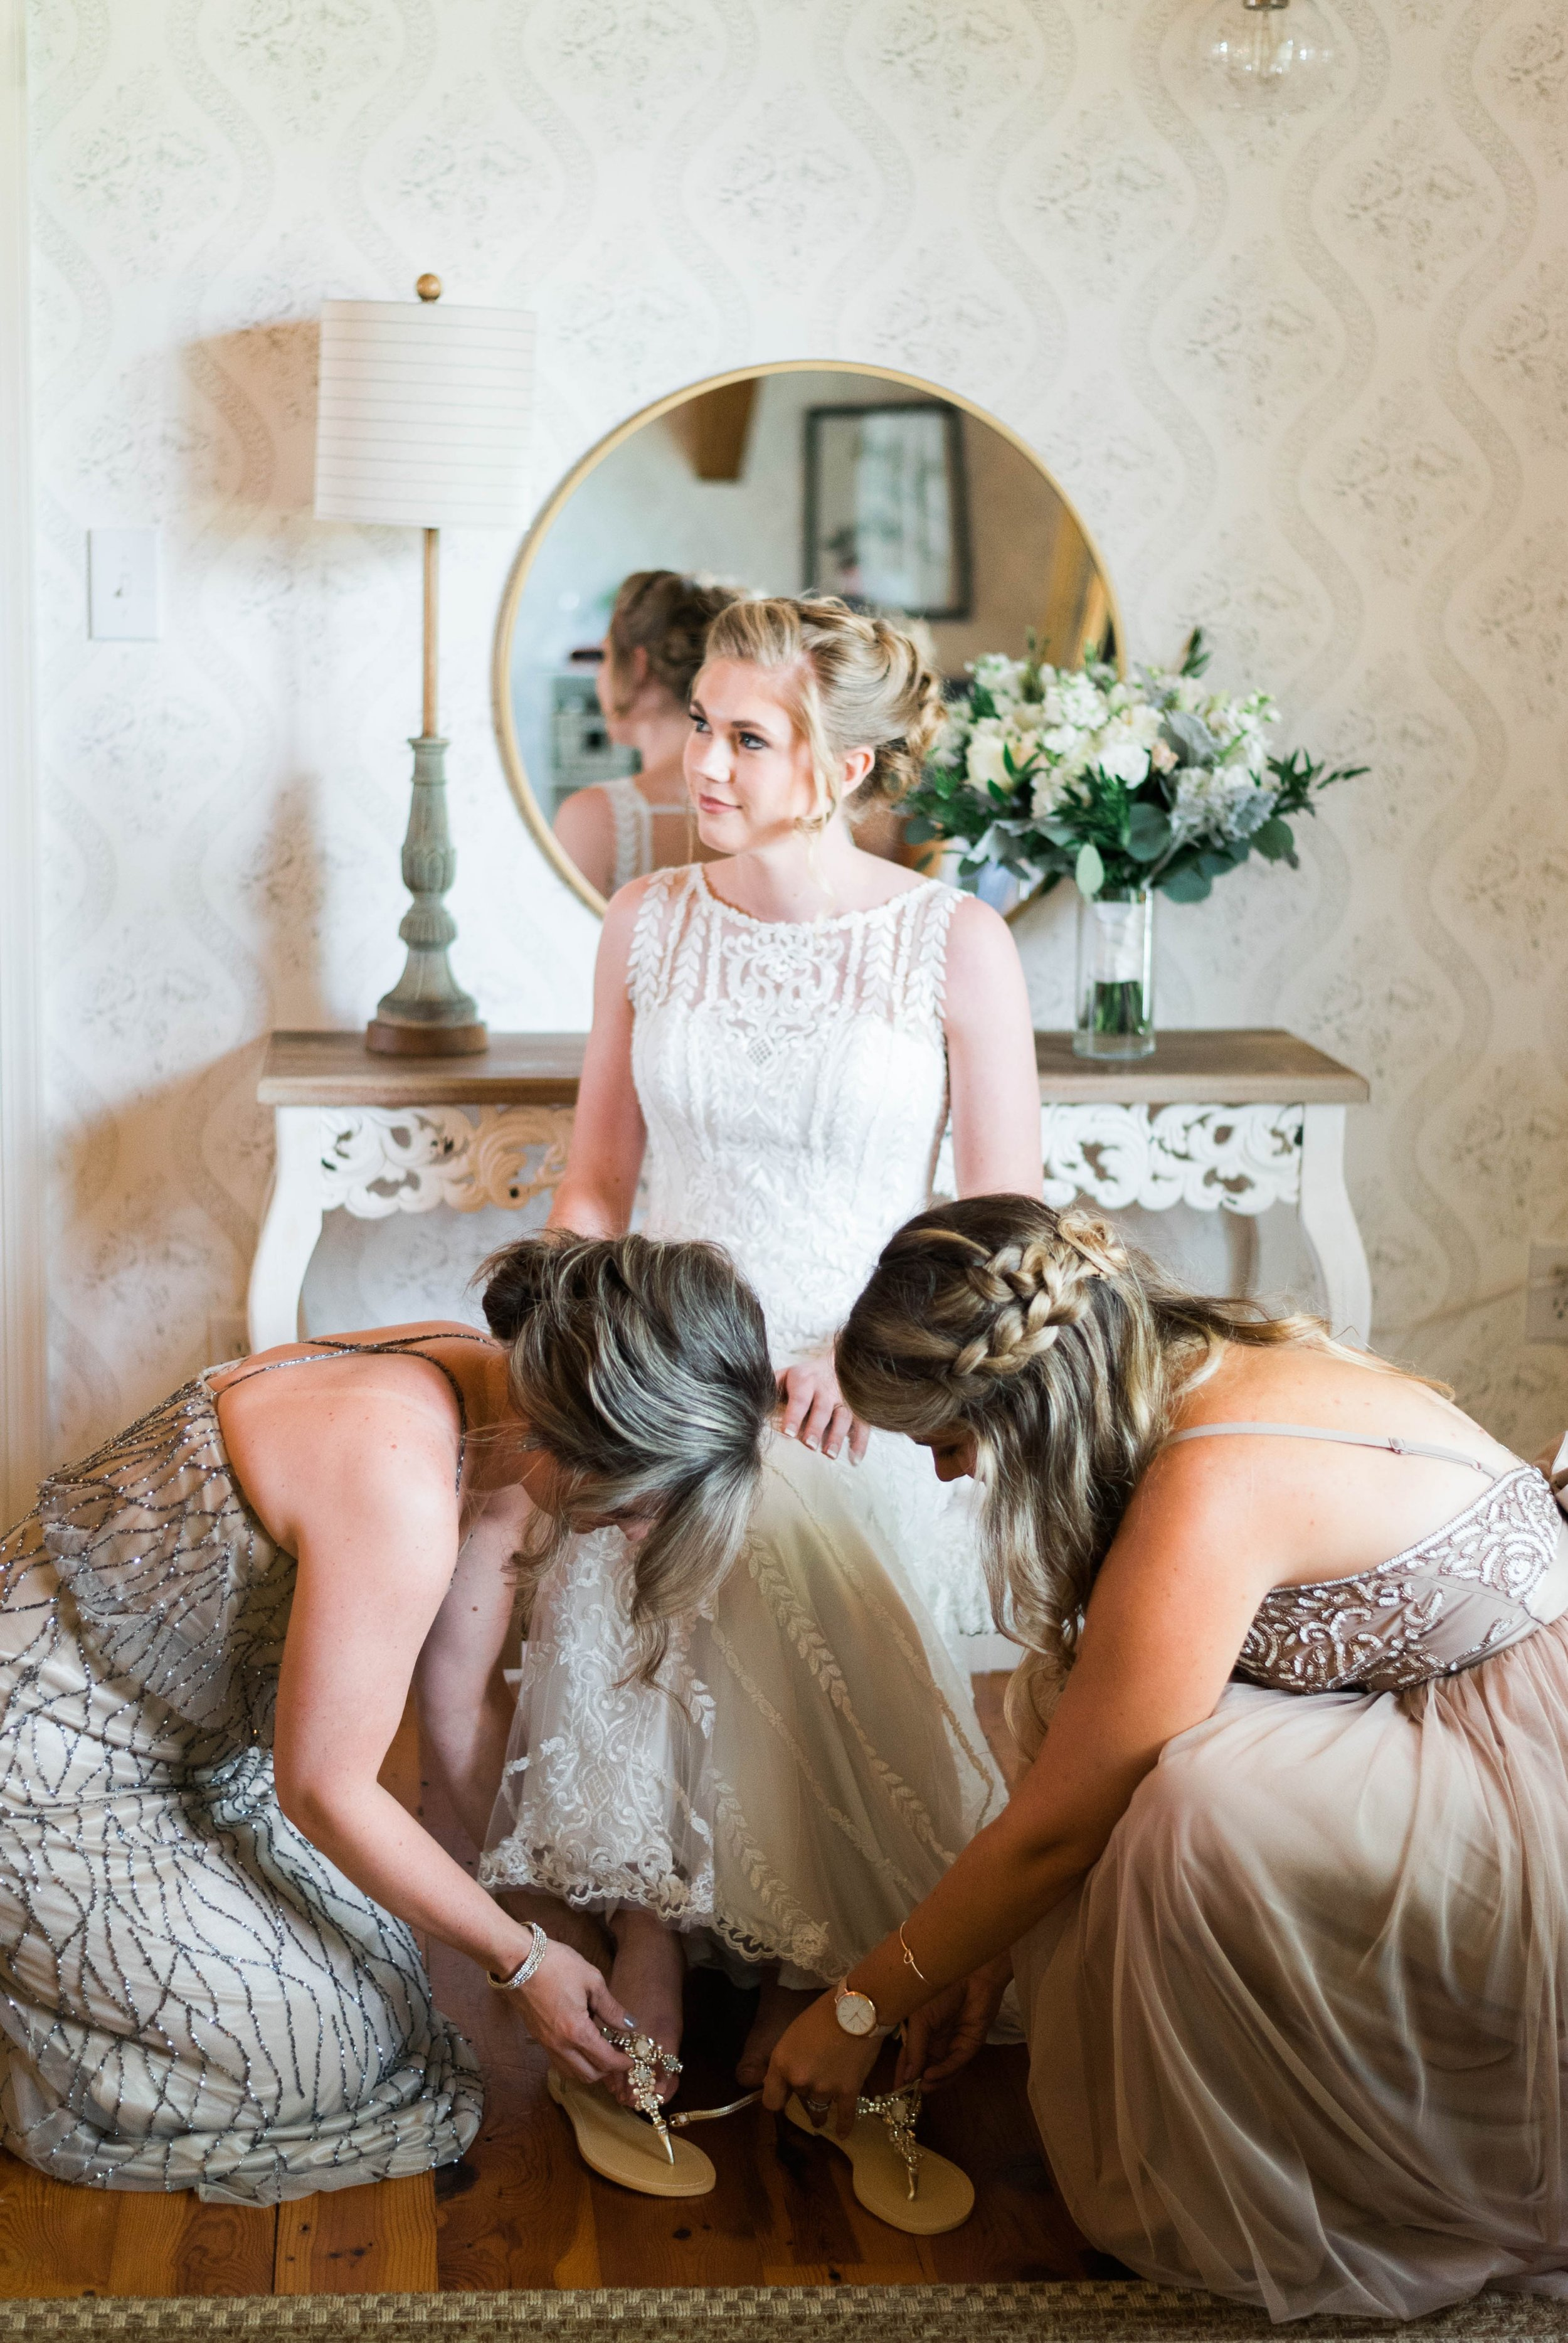 SorellaFarms_VirginiaWeddingPhotographer_BarnWedding_Lynchburgweddingphotographer_DanielleTyler 17.jpg